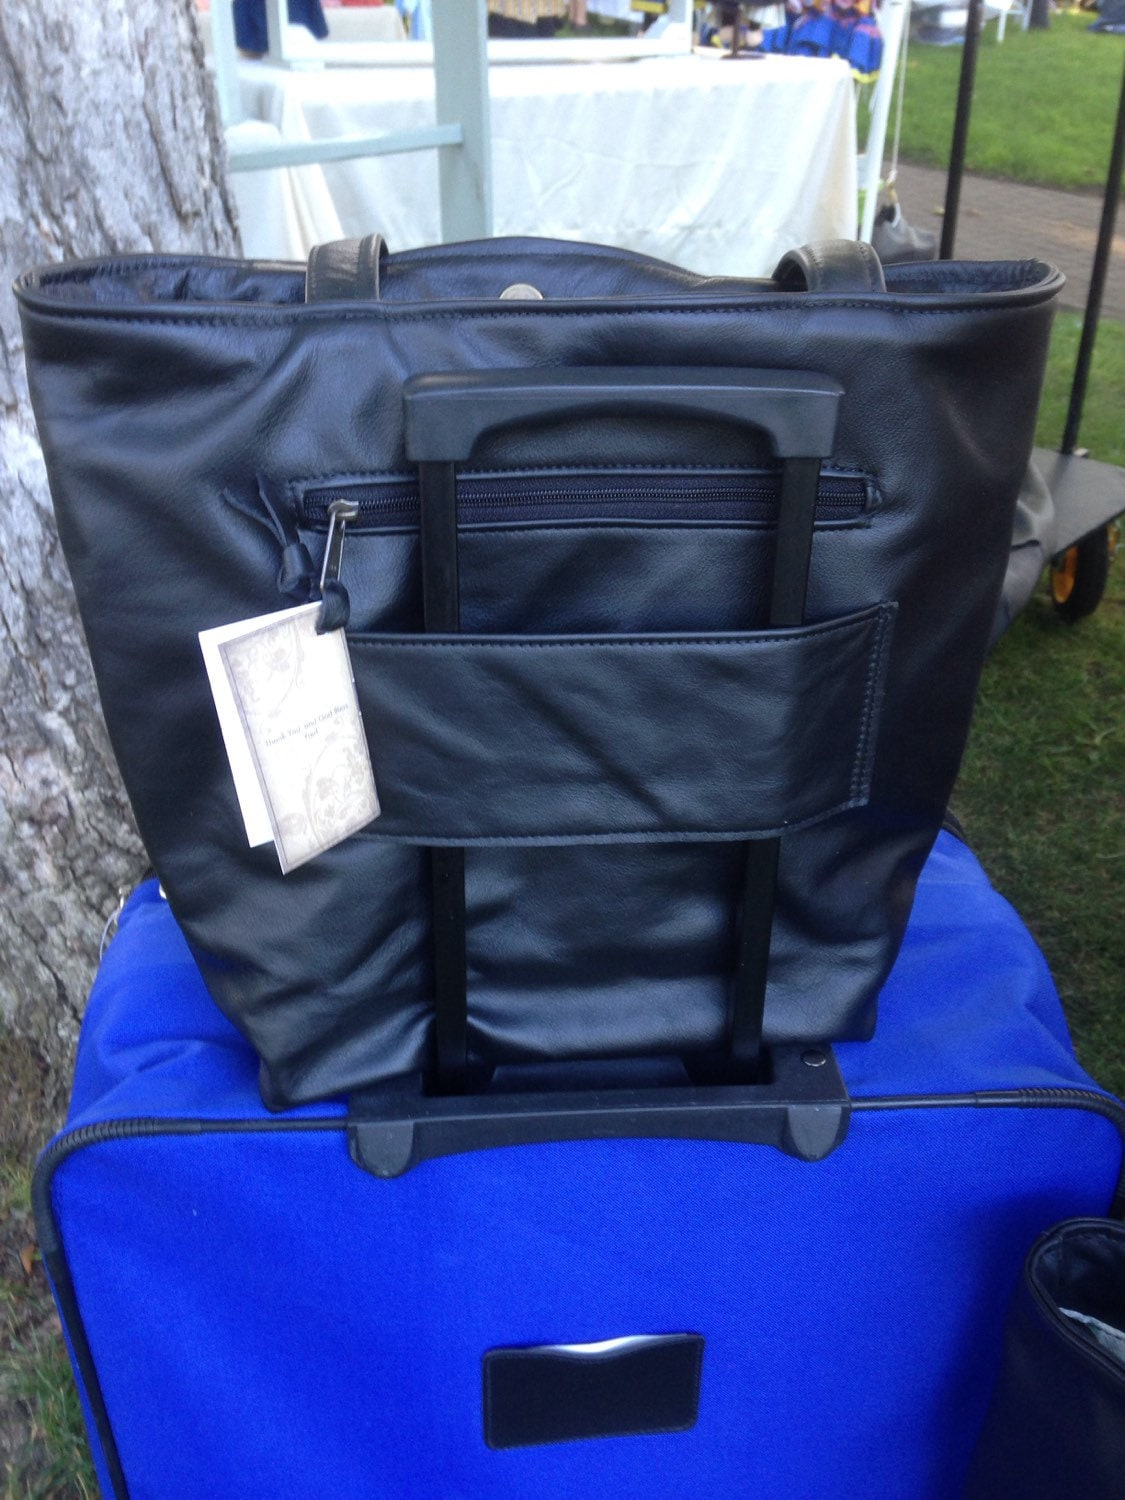 00c18d44df Leather Tote Bag with Trolley Sleeve carry on bag with